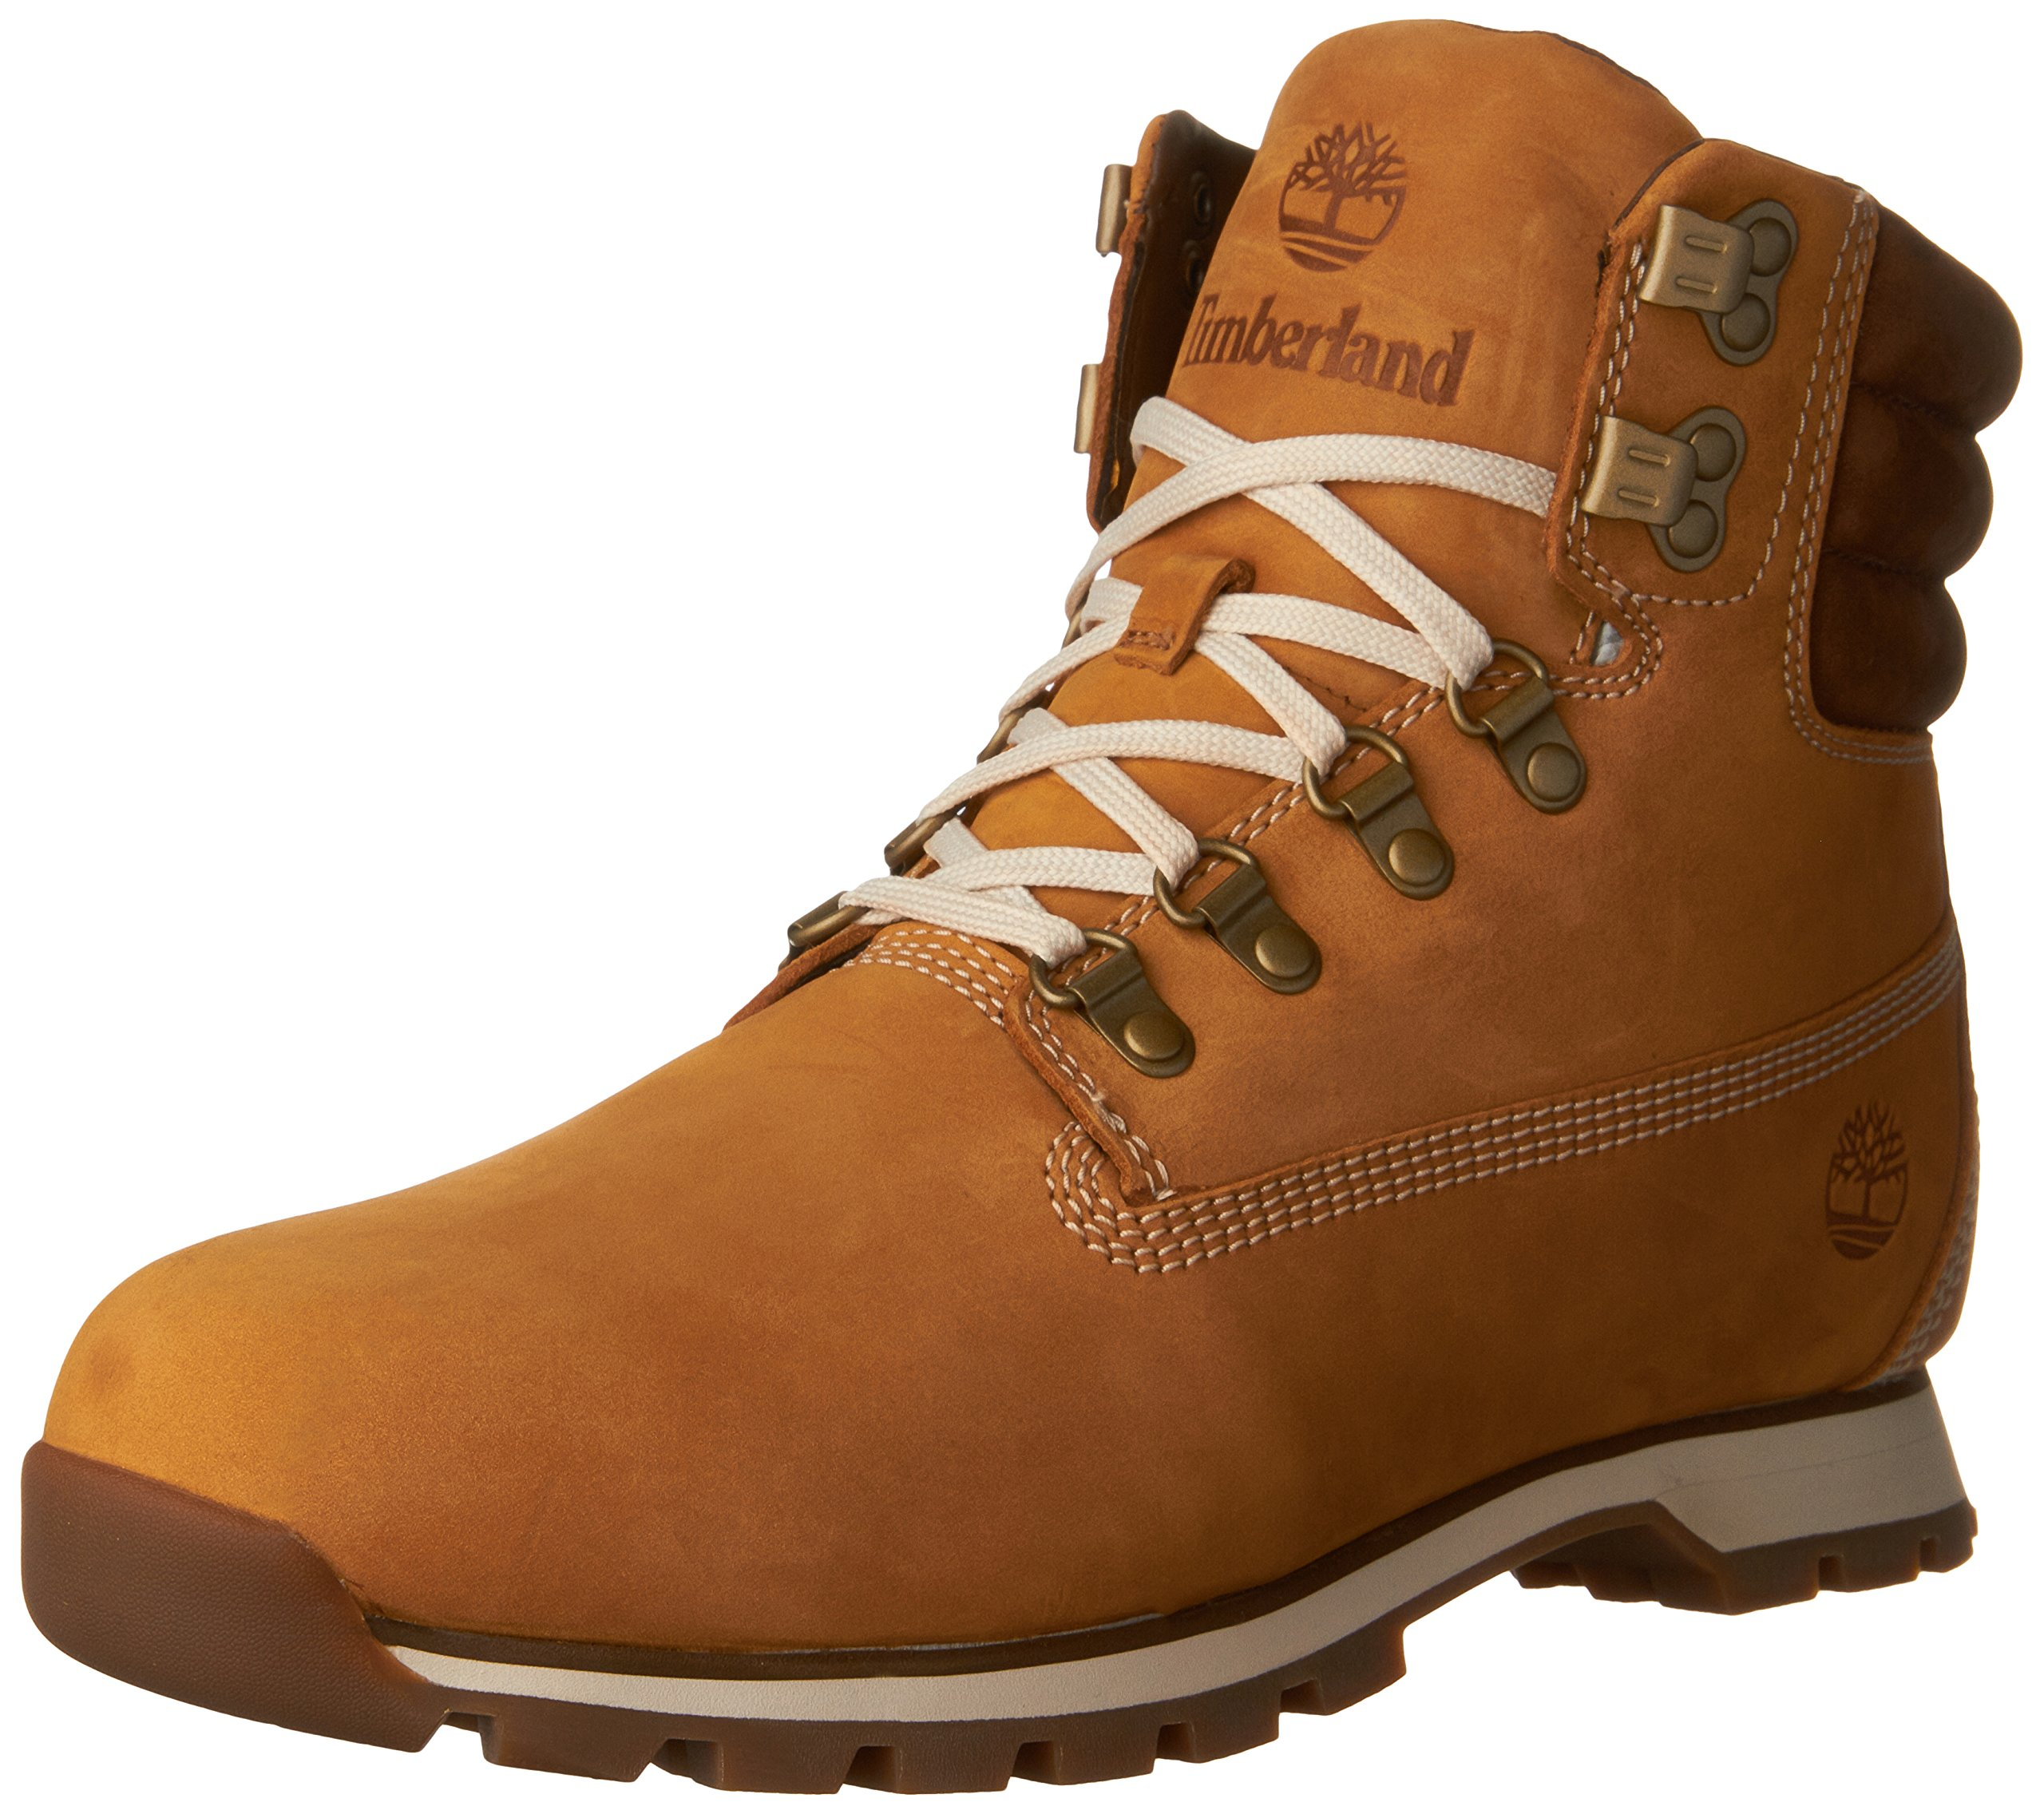 Timberland CA16W6 Men's Hutchington Hiker Boots, Wheat, 9 M US